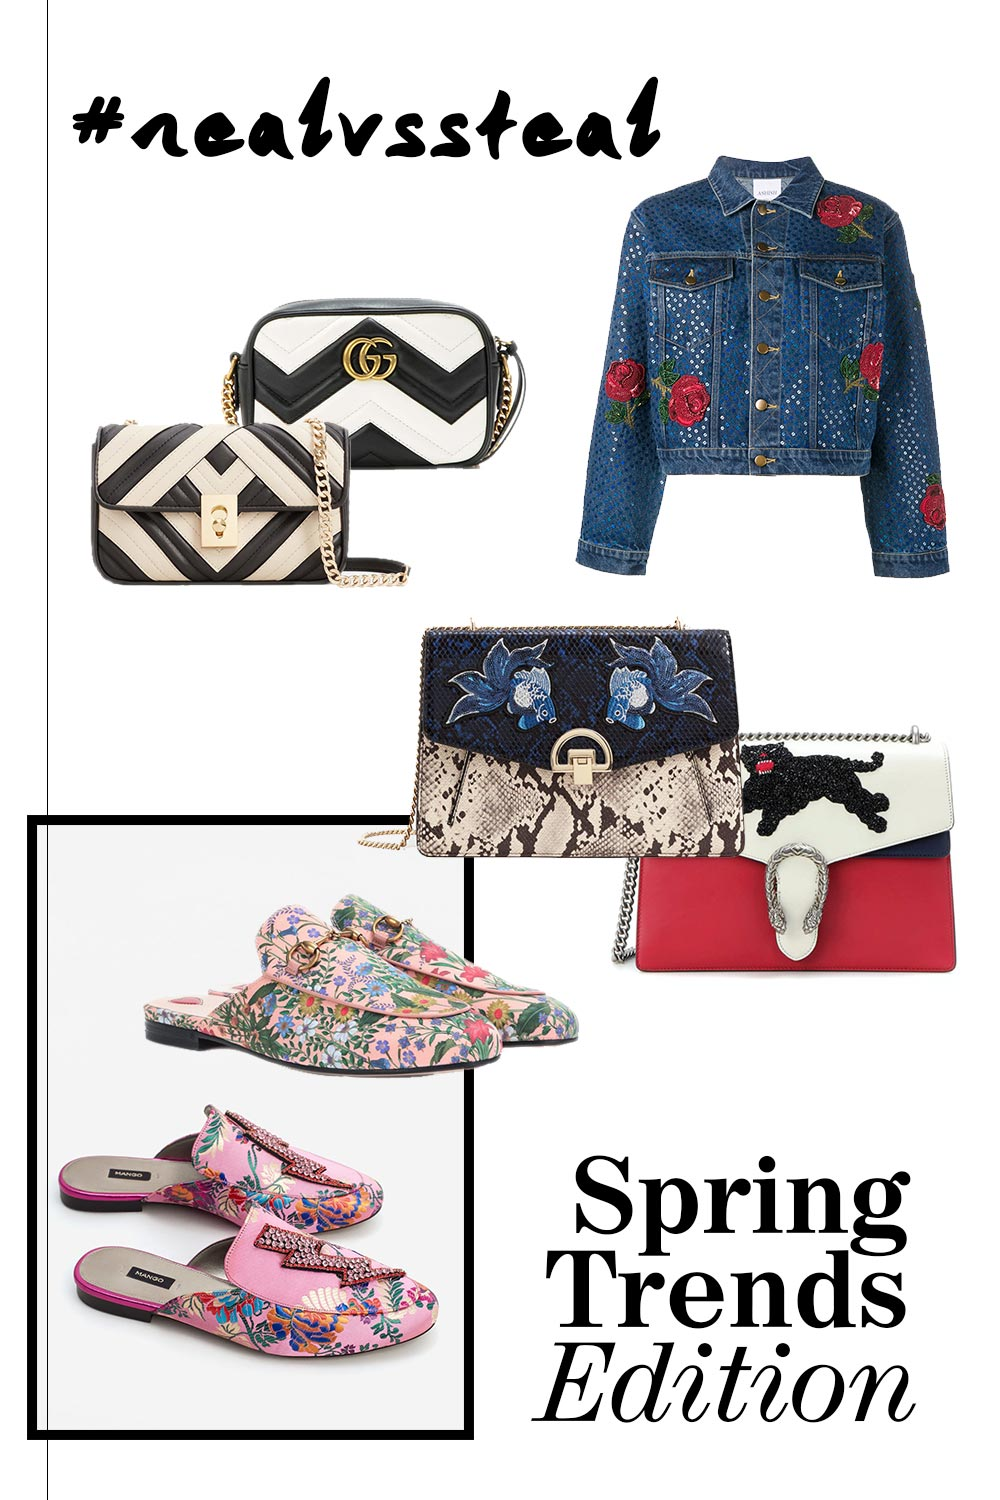 Real vs Steal, Spring Trends, Gucci Slipper, Gucci Bags, Gucci Jackets, Chanel Bags, Dupes, Lookalikes, Designer Dupes, Fashion Blog, Style Blog, www.whoismocca.com